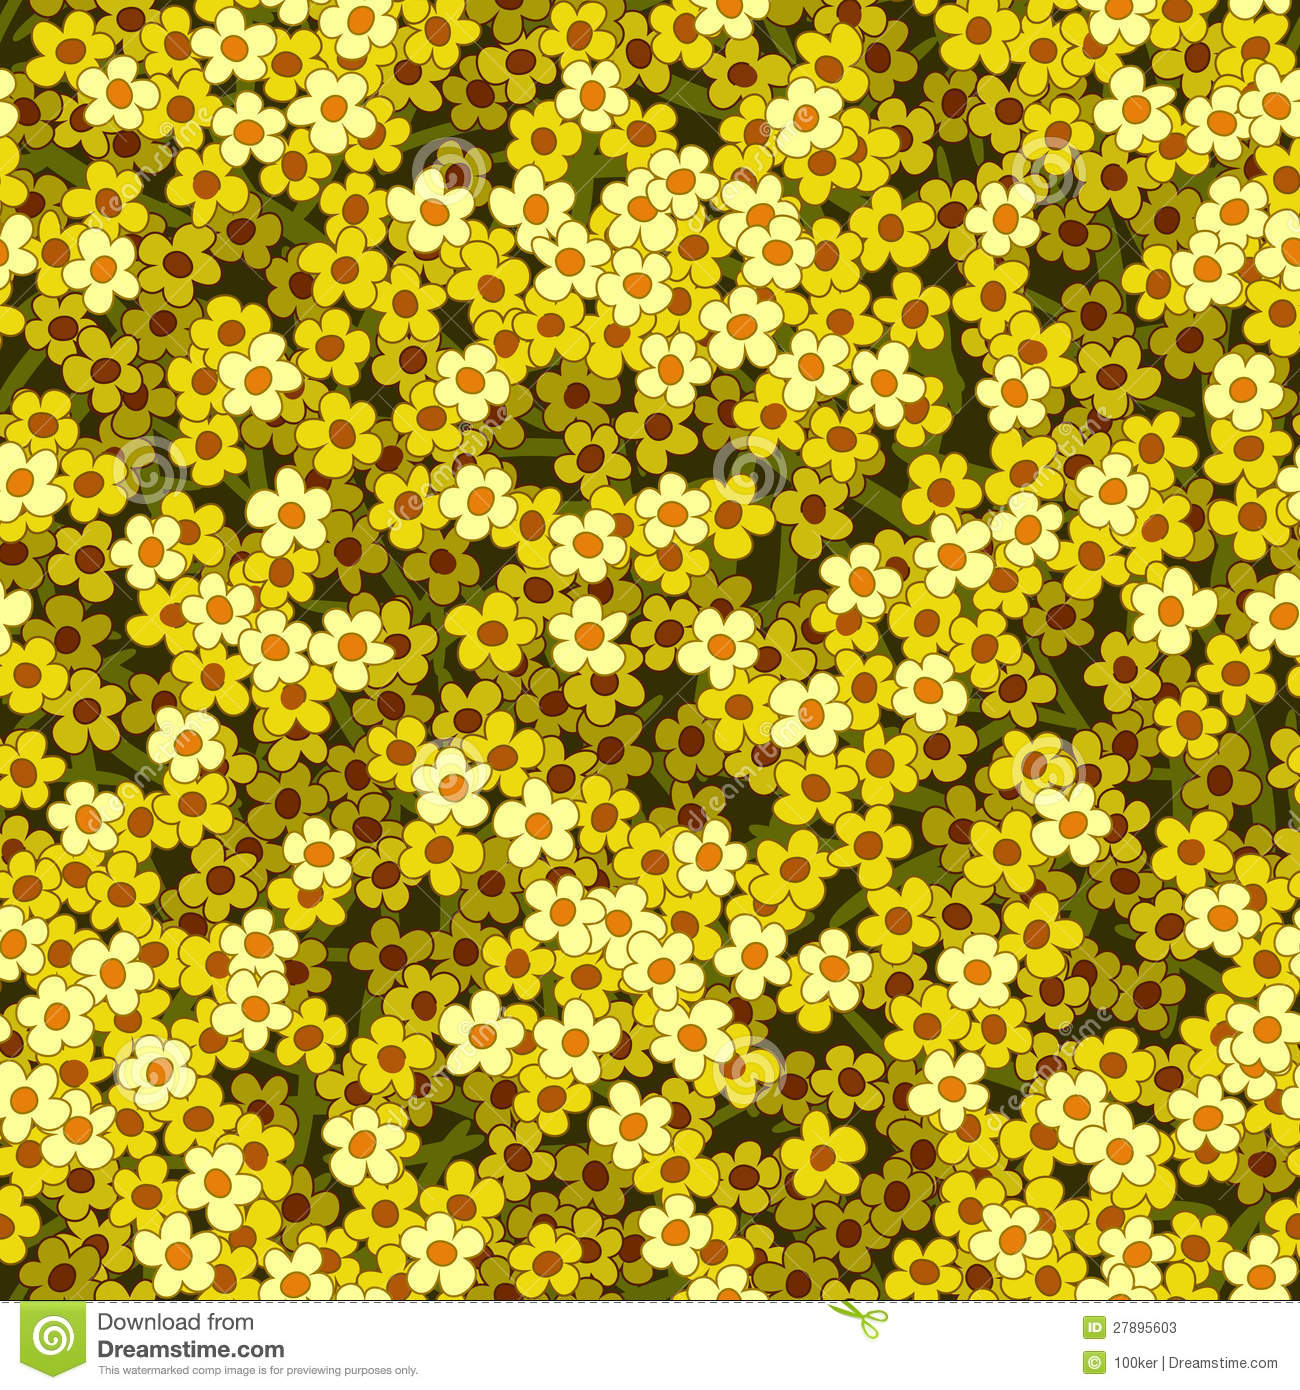 Yellow and white pattern background - photo#20